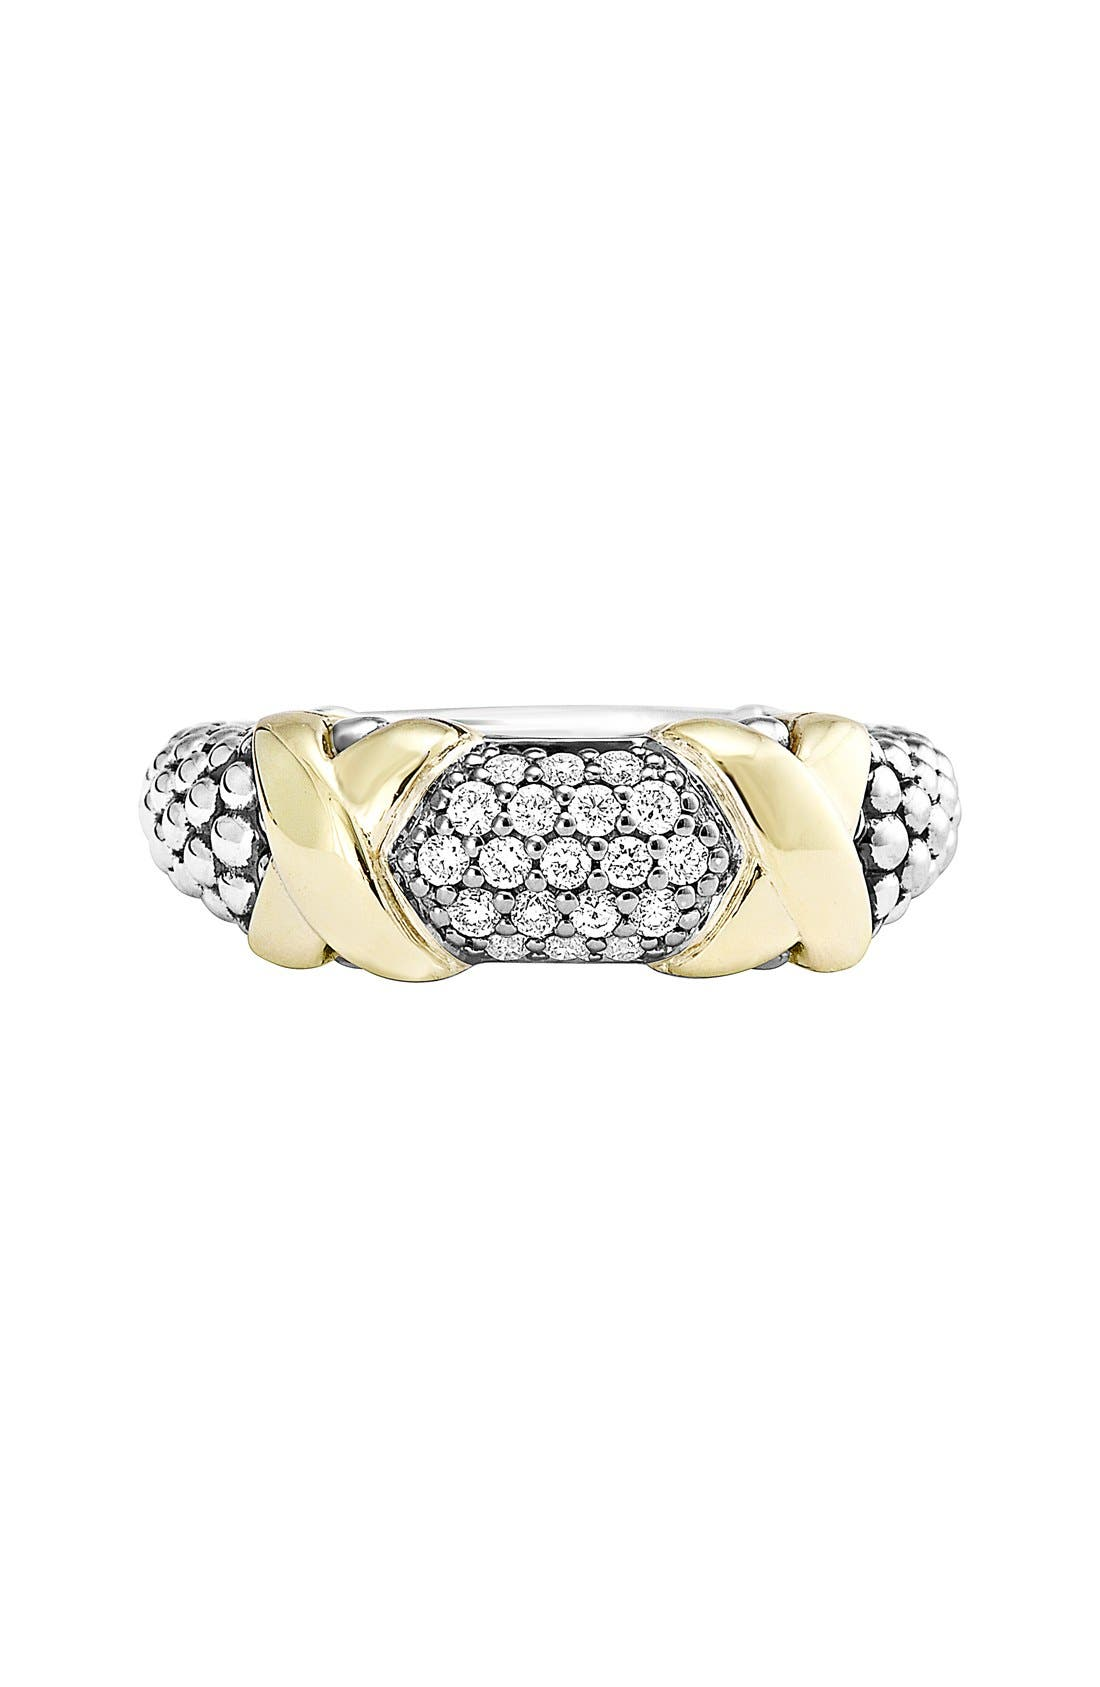 'Diamond Luxe' Ring,                             Alternate thumbnail 3, color,                             Silver/ Gold